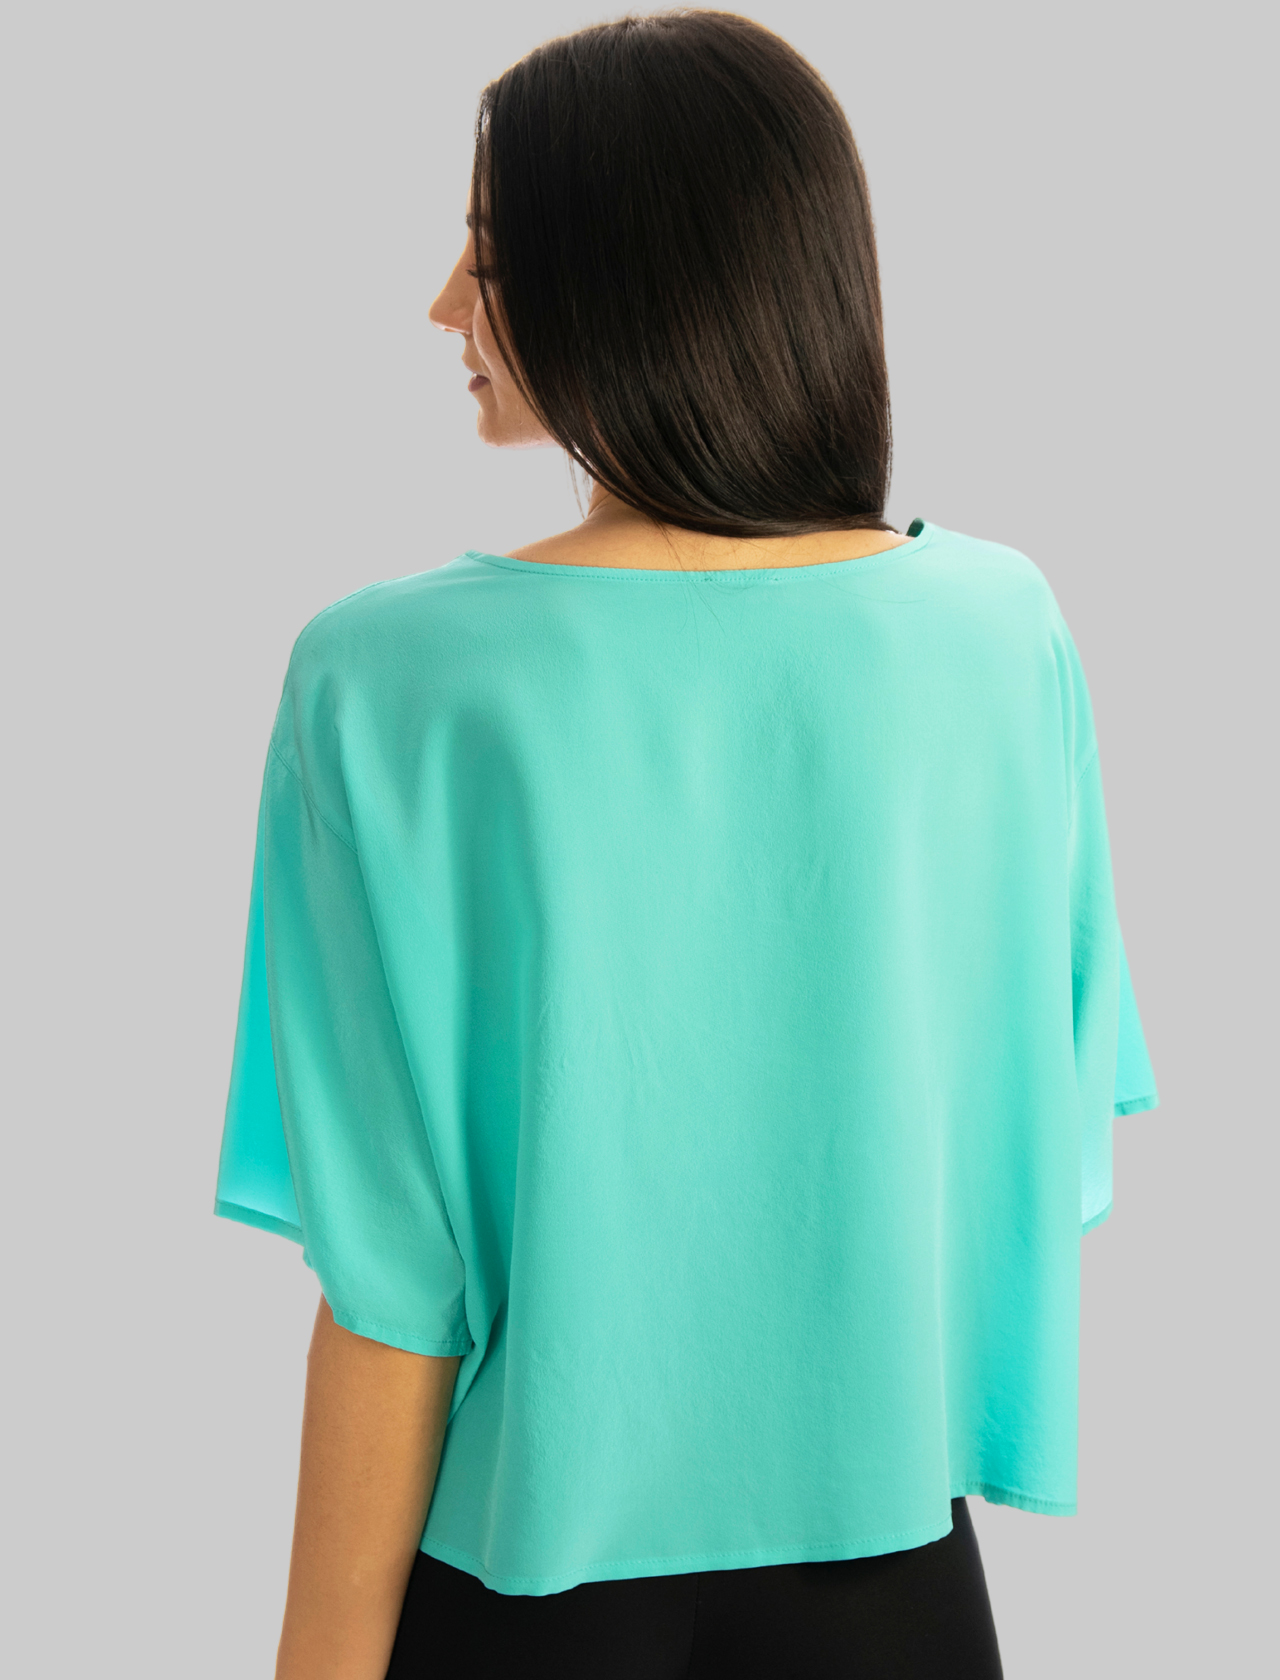 Abbigliamento Donna T-shit in Seta Crepe de Chine Over in Turchese Maliparmi | Camicie e Top | JM54243004482012